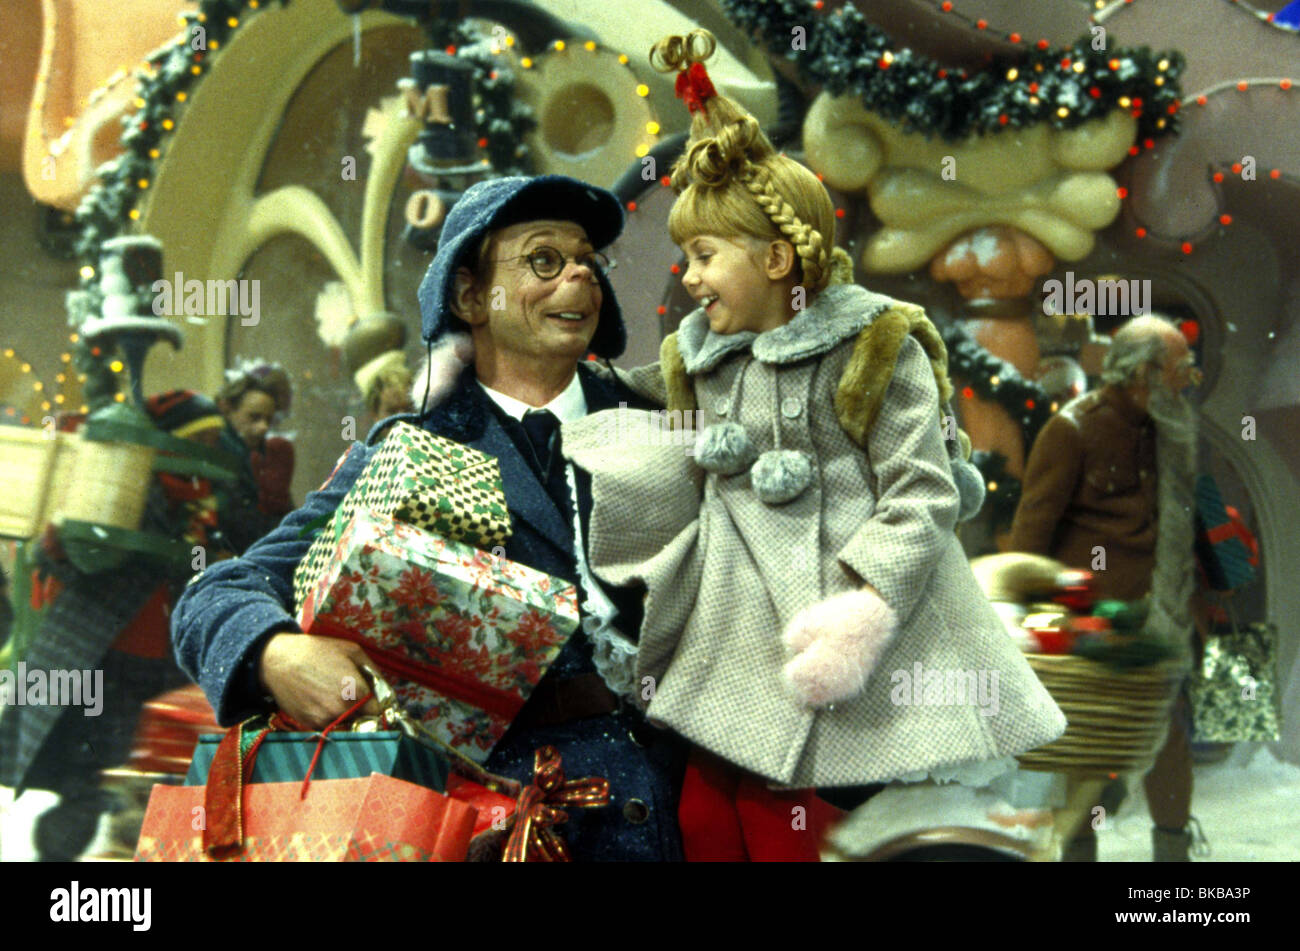 How The Grinch Stole Christmas 2000 Bill Irwin Taylor Momsen Howt Stock Photo Alamy